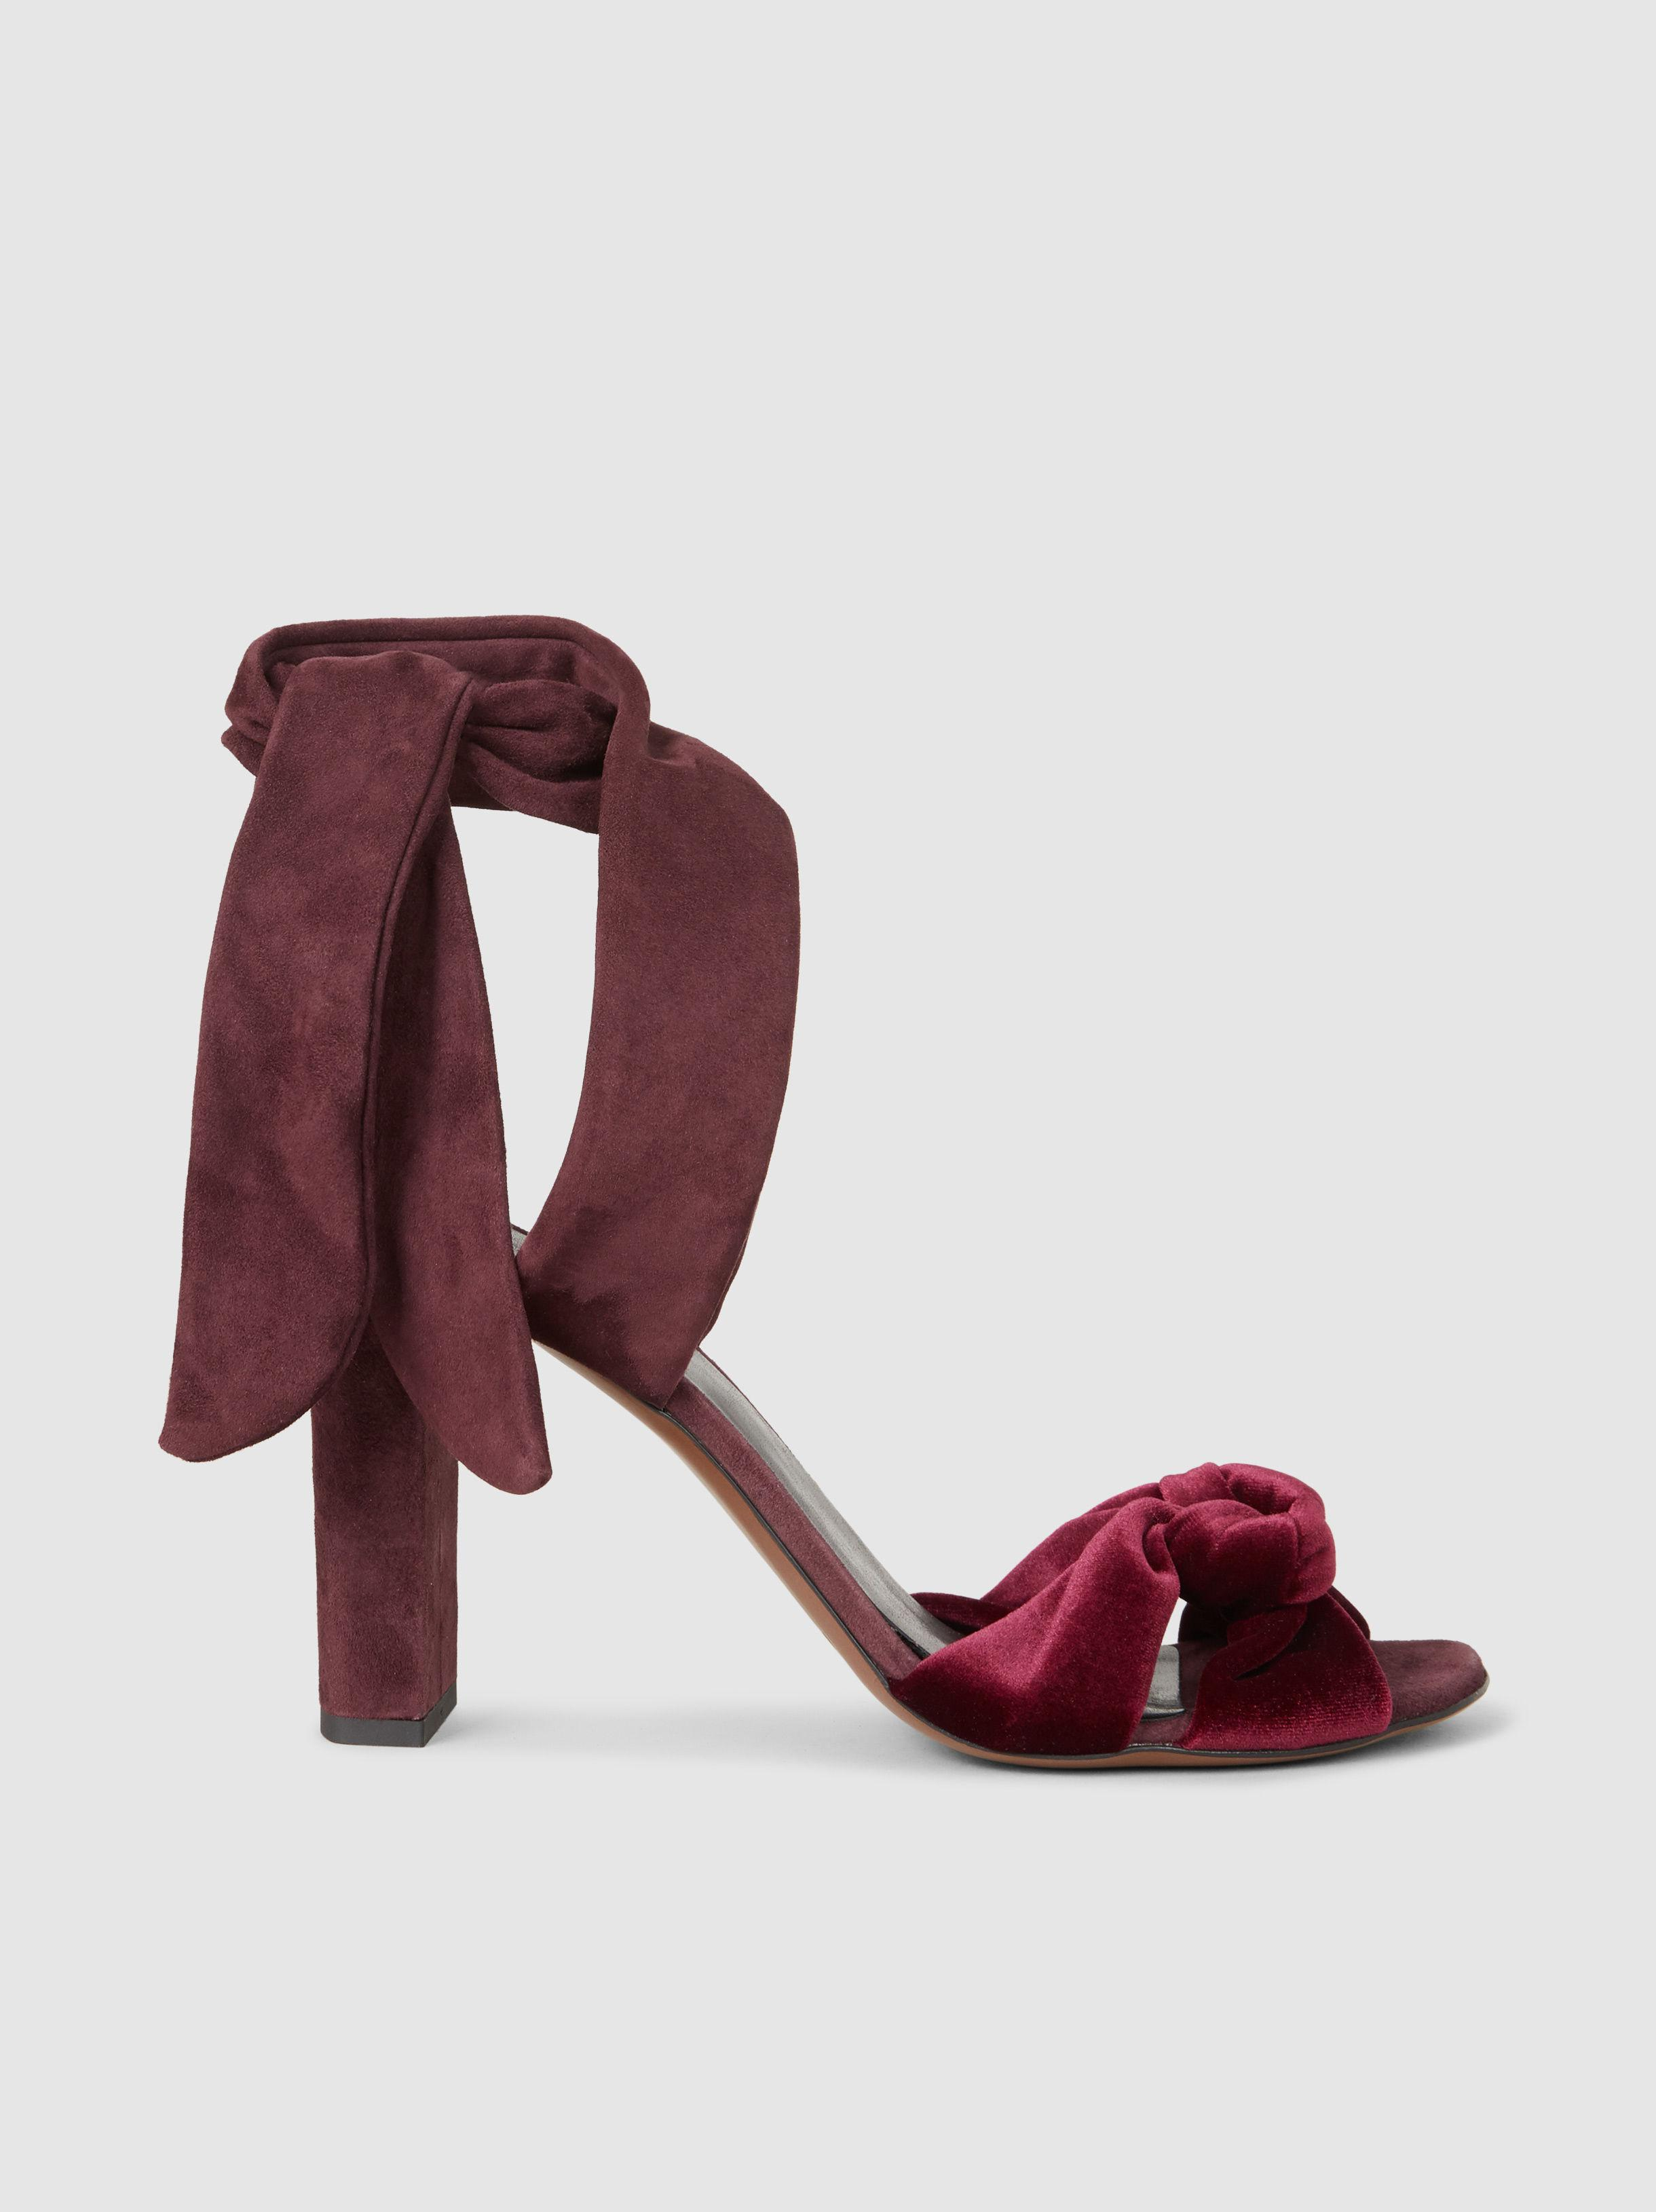 Neous Amesiella Velvet and Suede Sandals Outlet Official Site rDkXwhvrYj